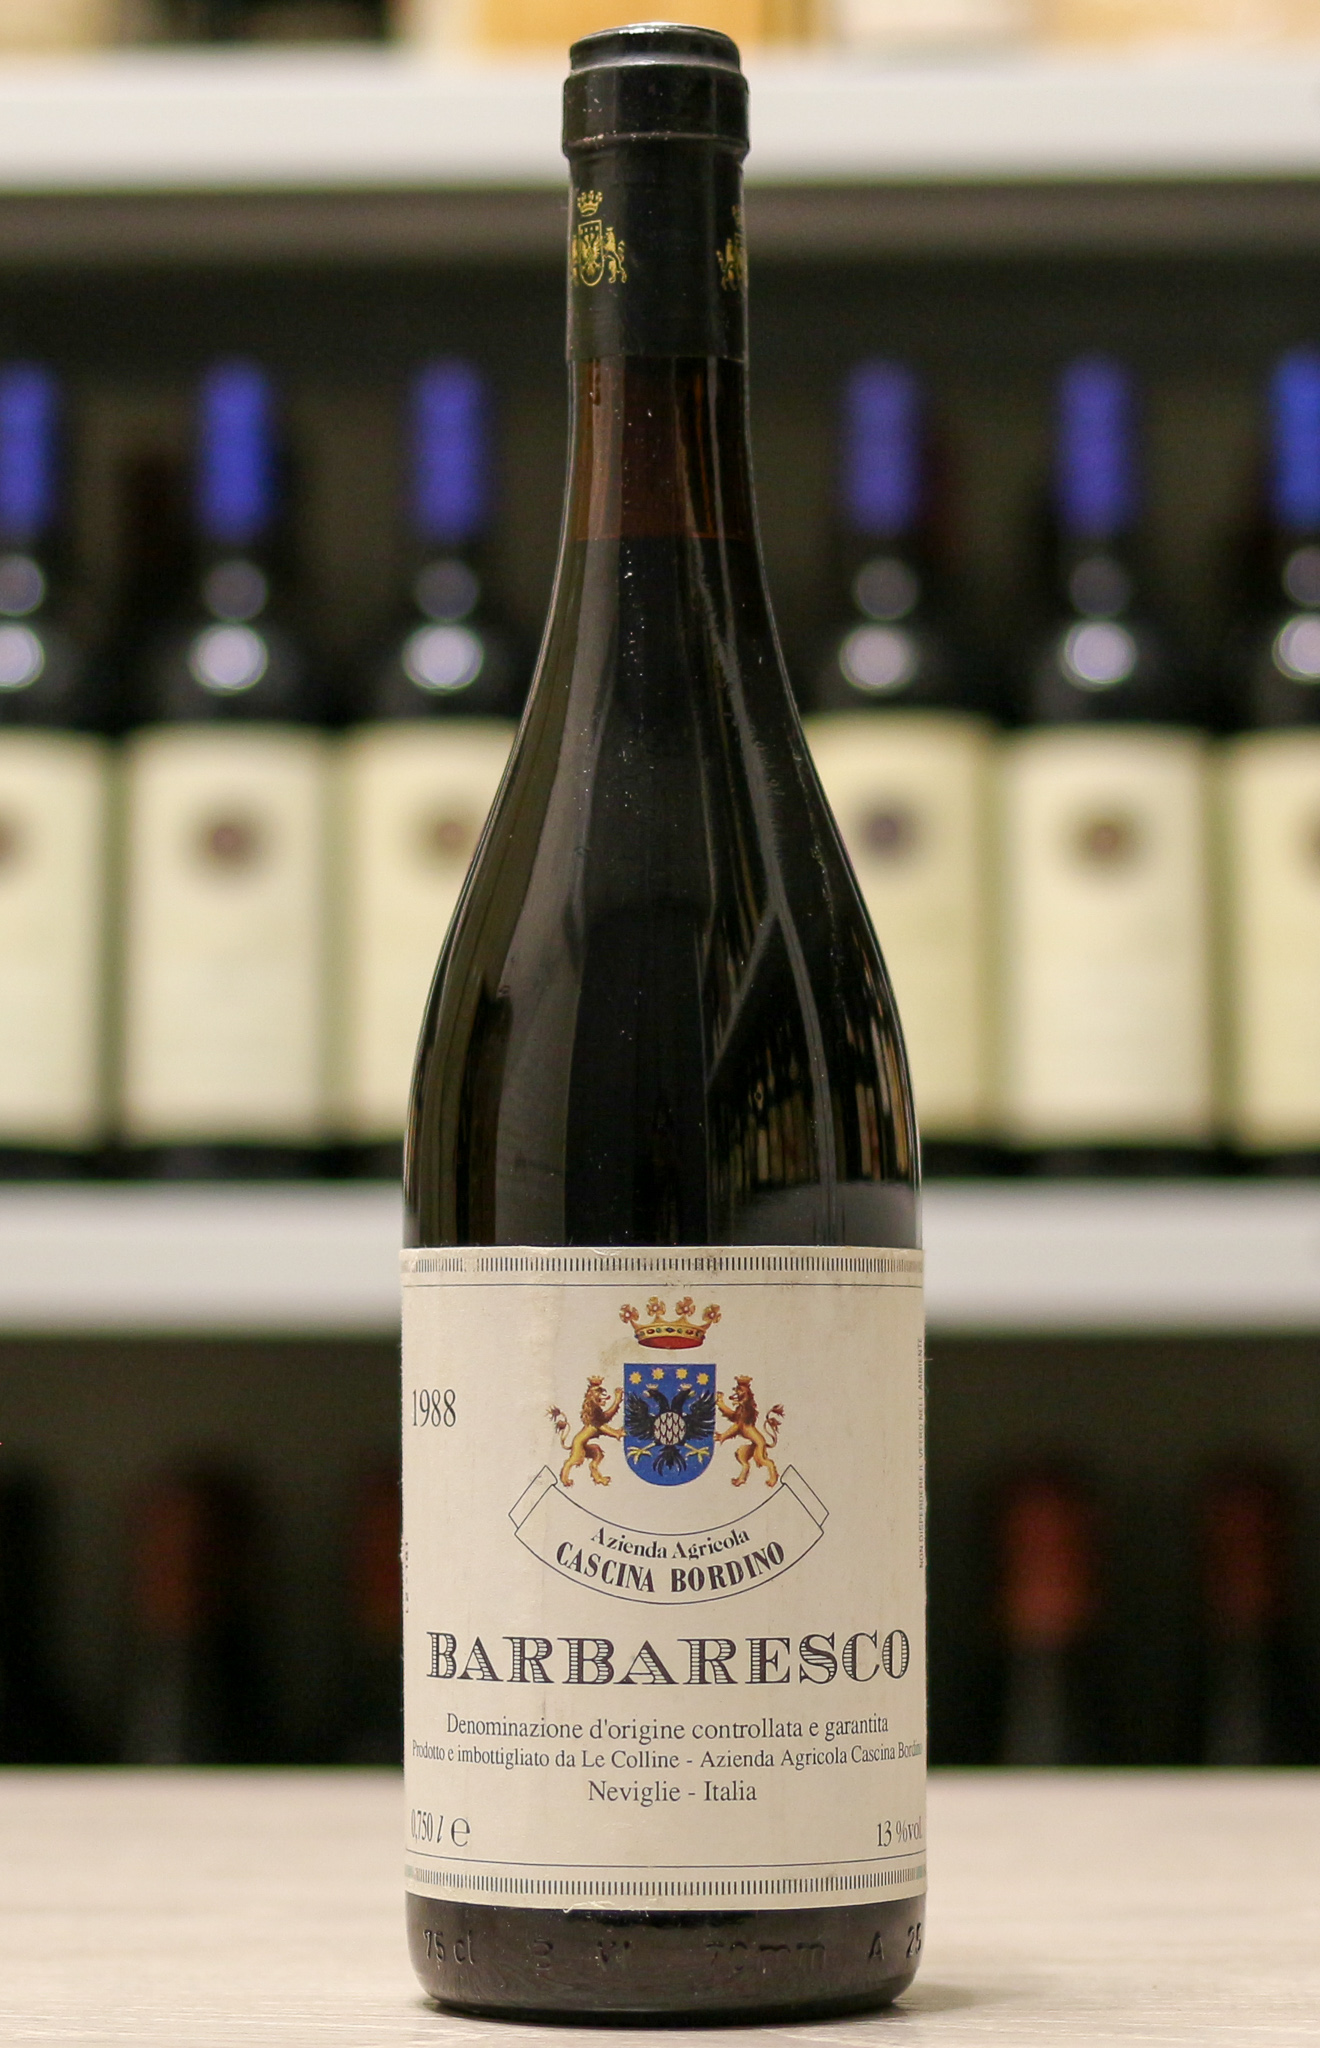 Красное вино Barbaresco Cascina Bordino 1988 года урожая